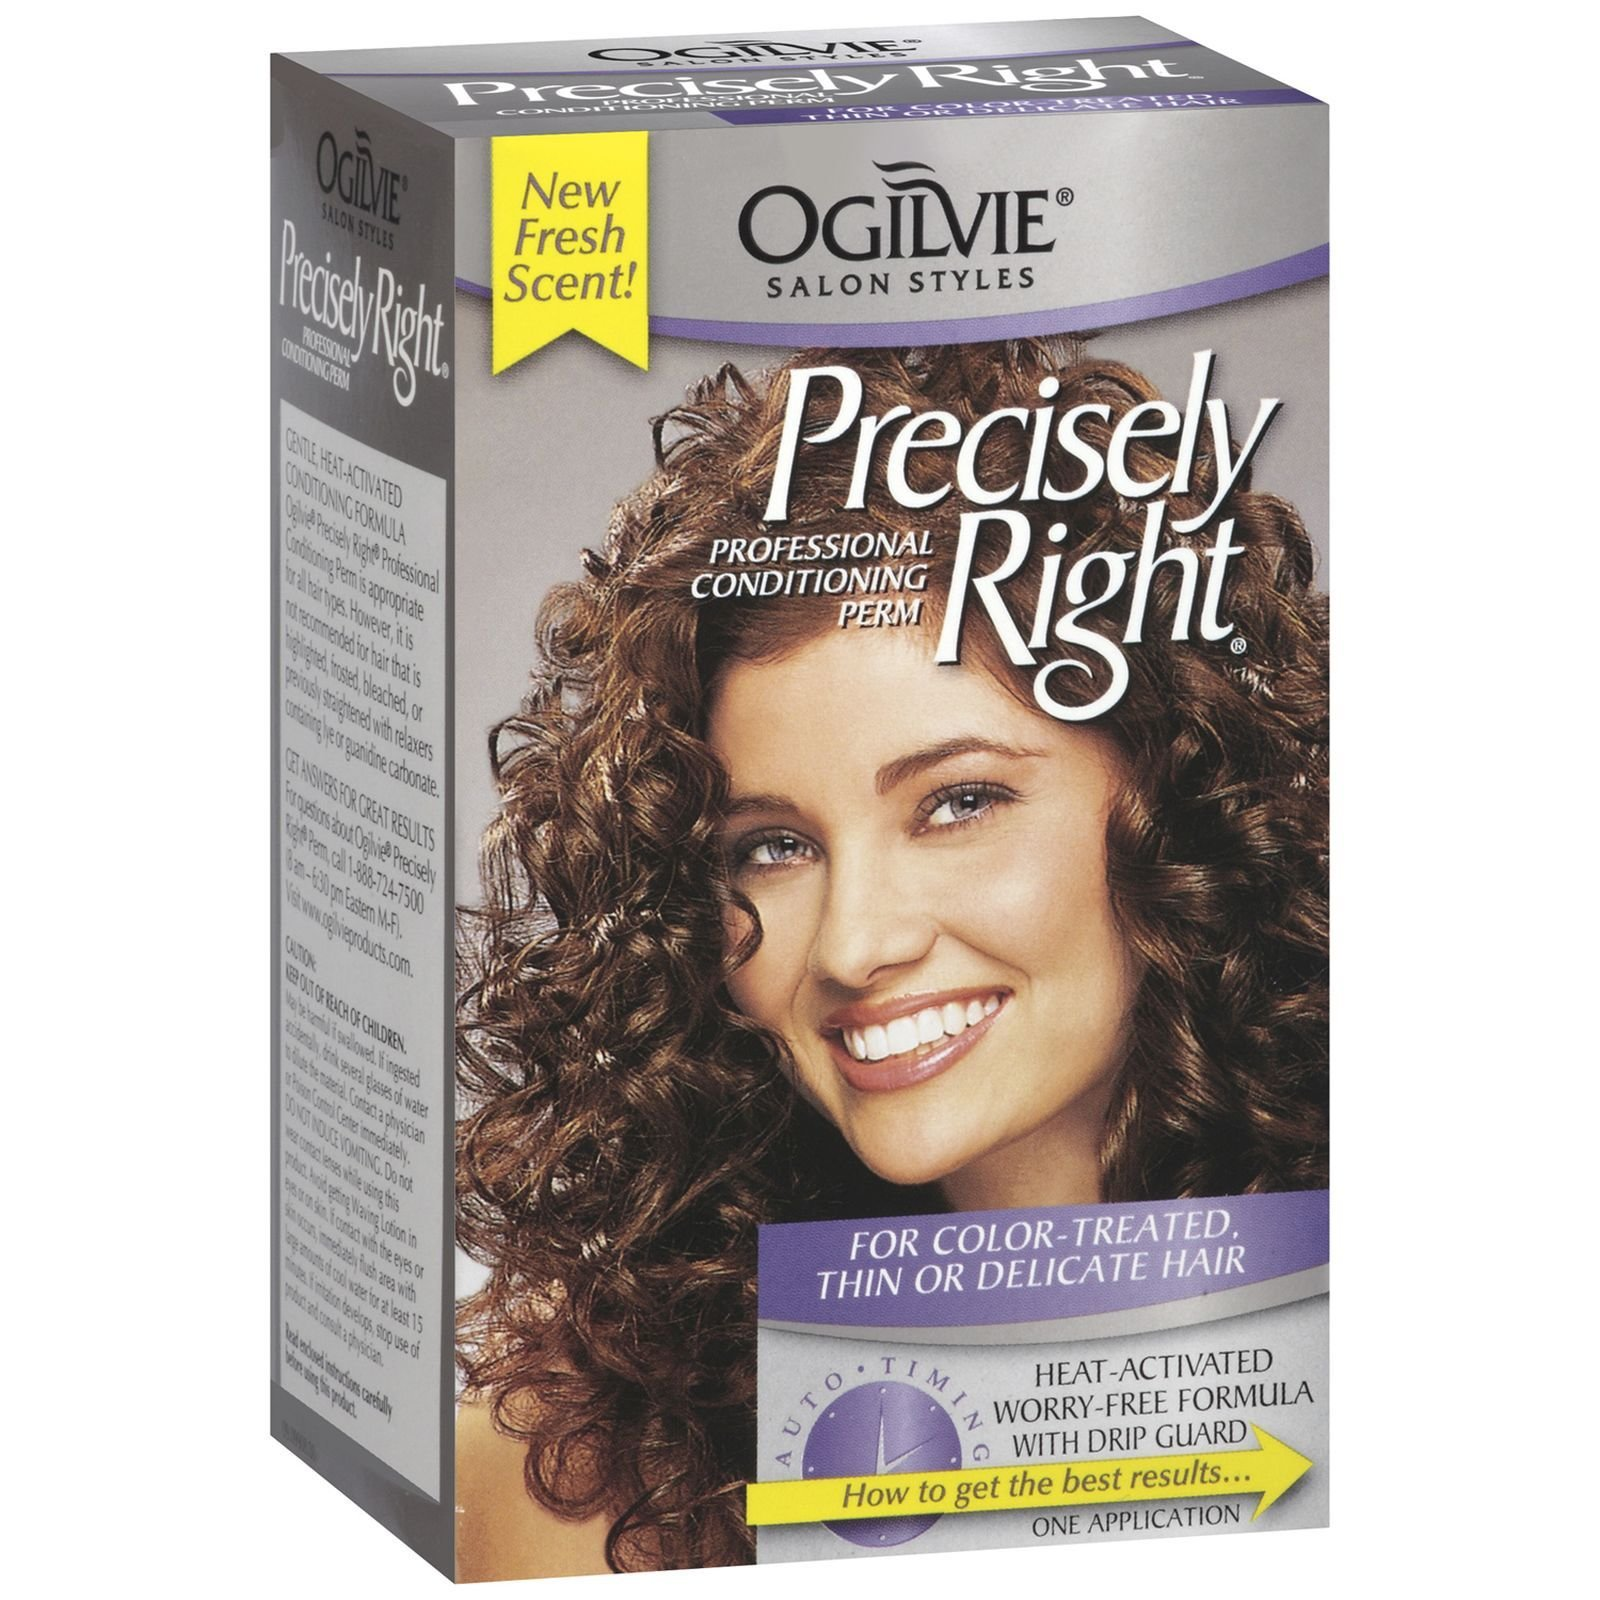 The Best Ogilvie Salon Styles Professional Conditioning Perm For Pictures